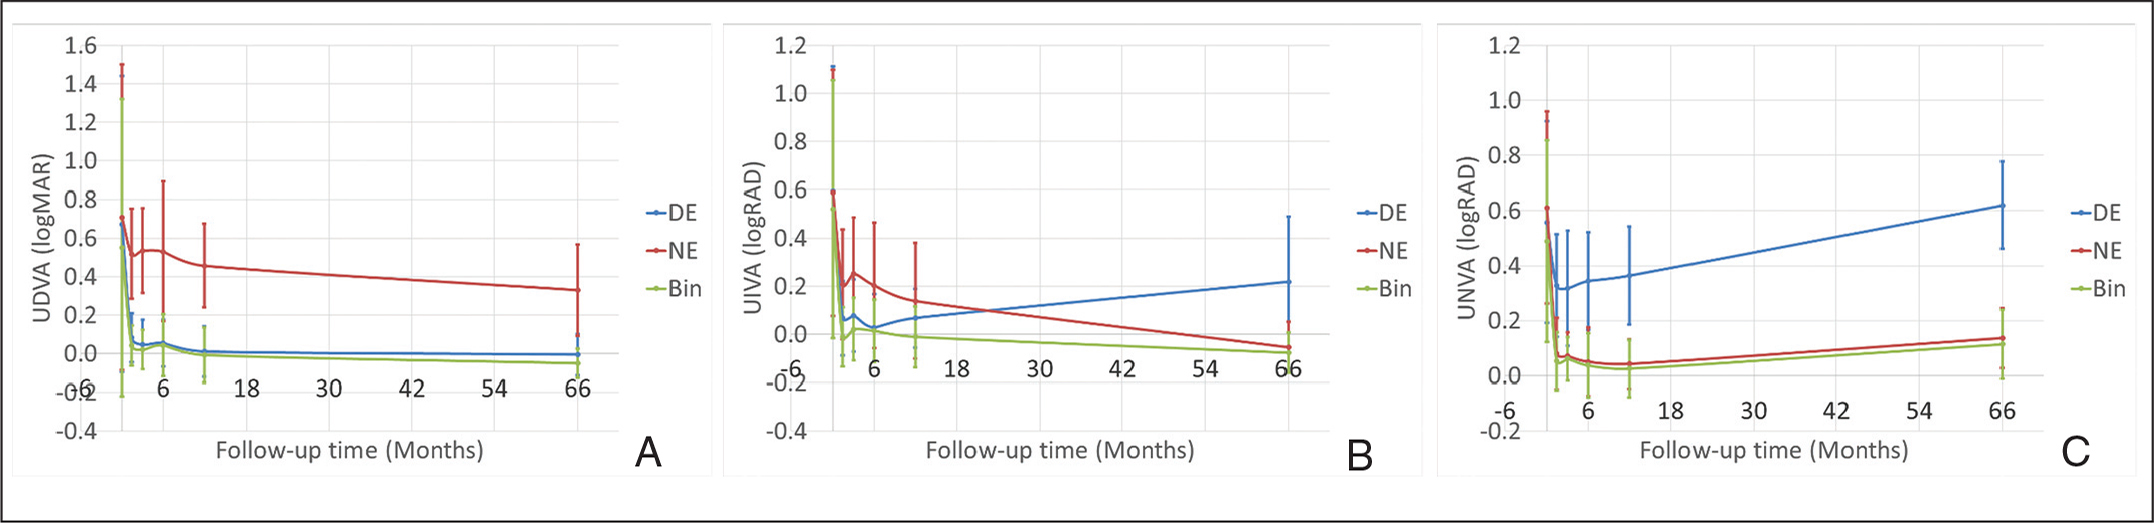 Efficacy: Mean uncorrected visual acuity up to 6 years of follow-up after treating with a hybrid bi-aspheric micro-monovision ablation profile for presbyopic corneal treatments. (A) uncorrected distance visual acuity (UDVA), (B) uncorrected intermediate visual acuity (UIVA), and (C) uncorrected near visual acuity (UNVA). DE = dominant eye; NE = non-dominant eye; Bin = binocular